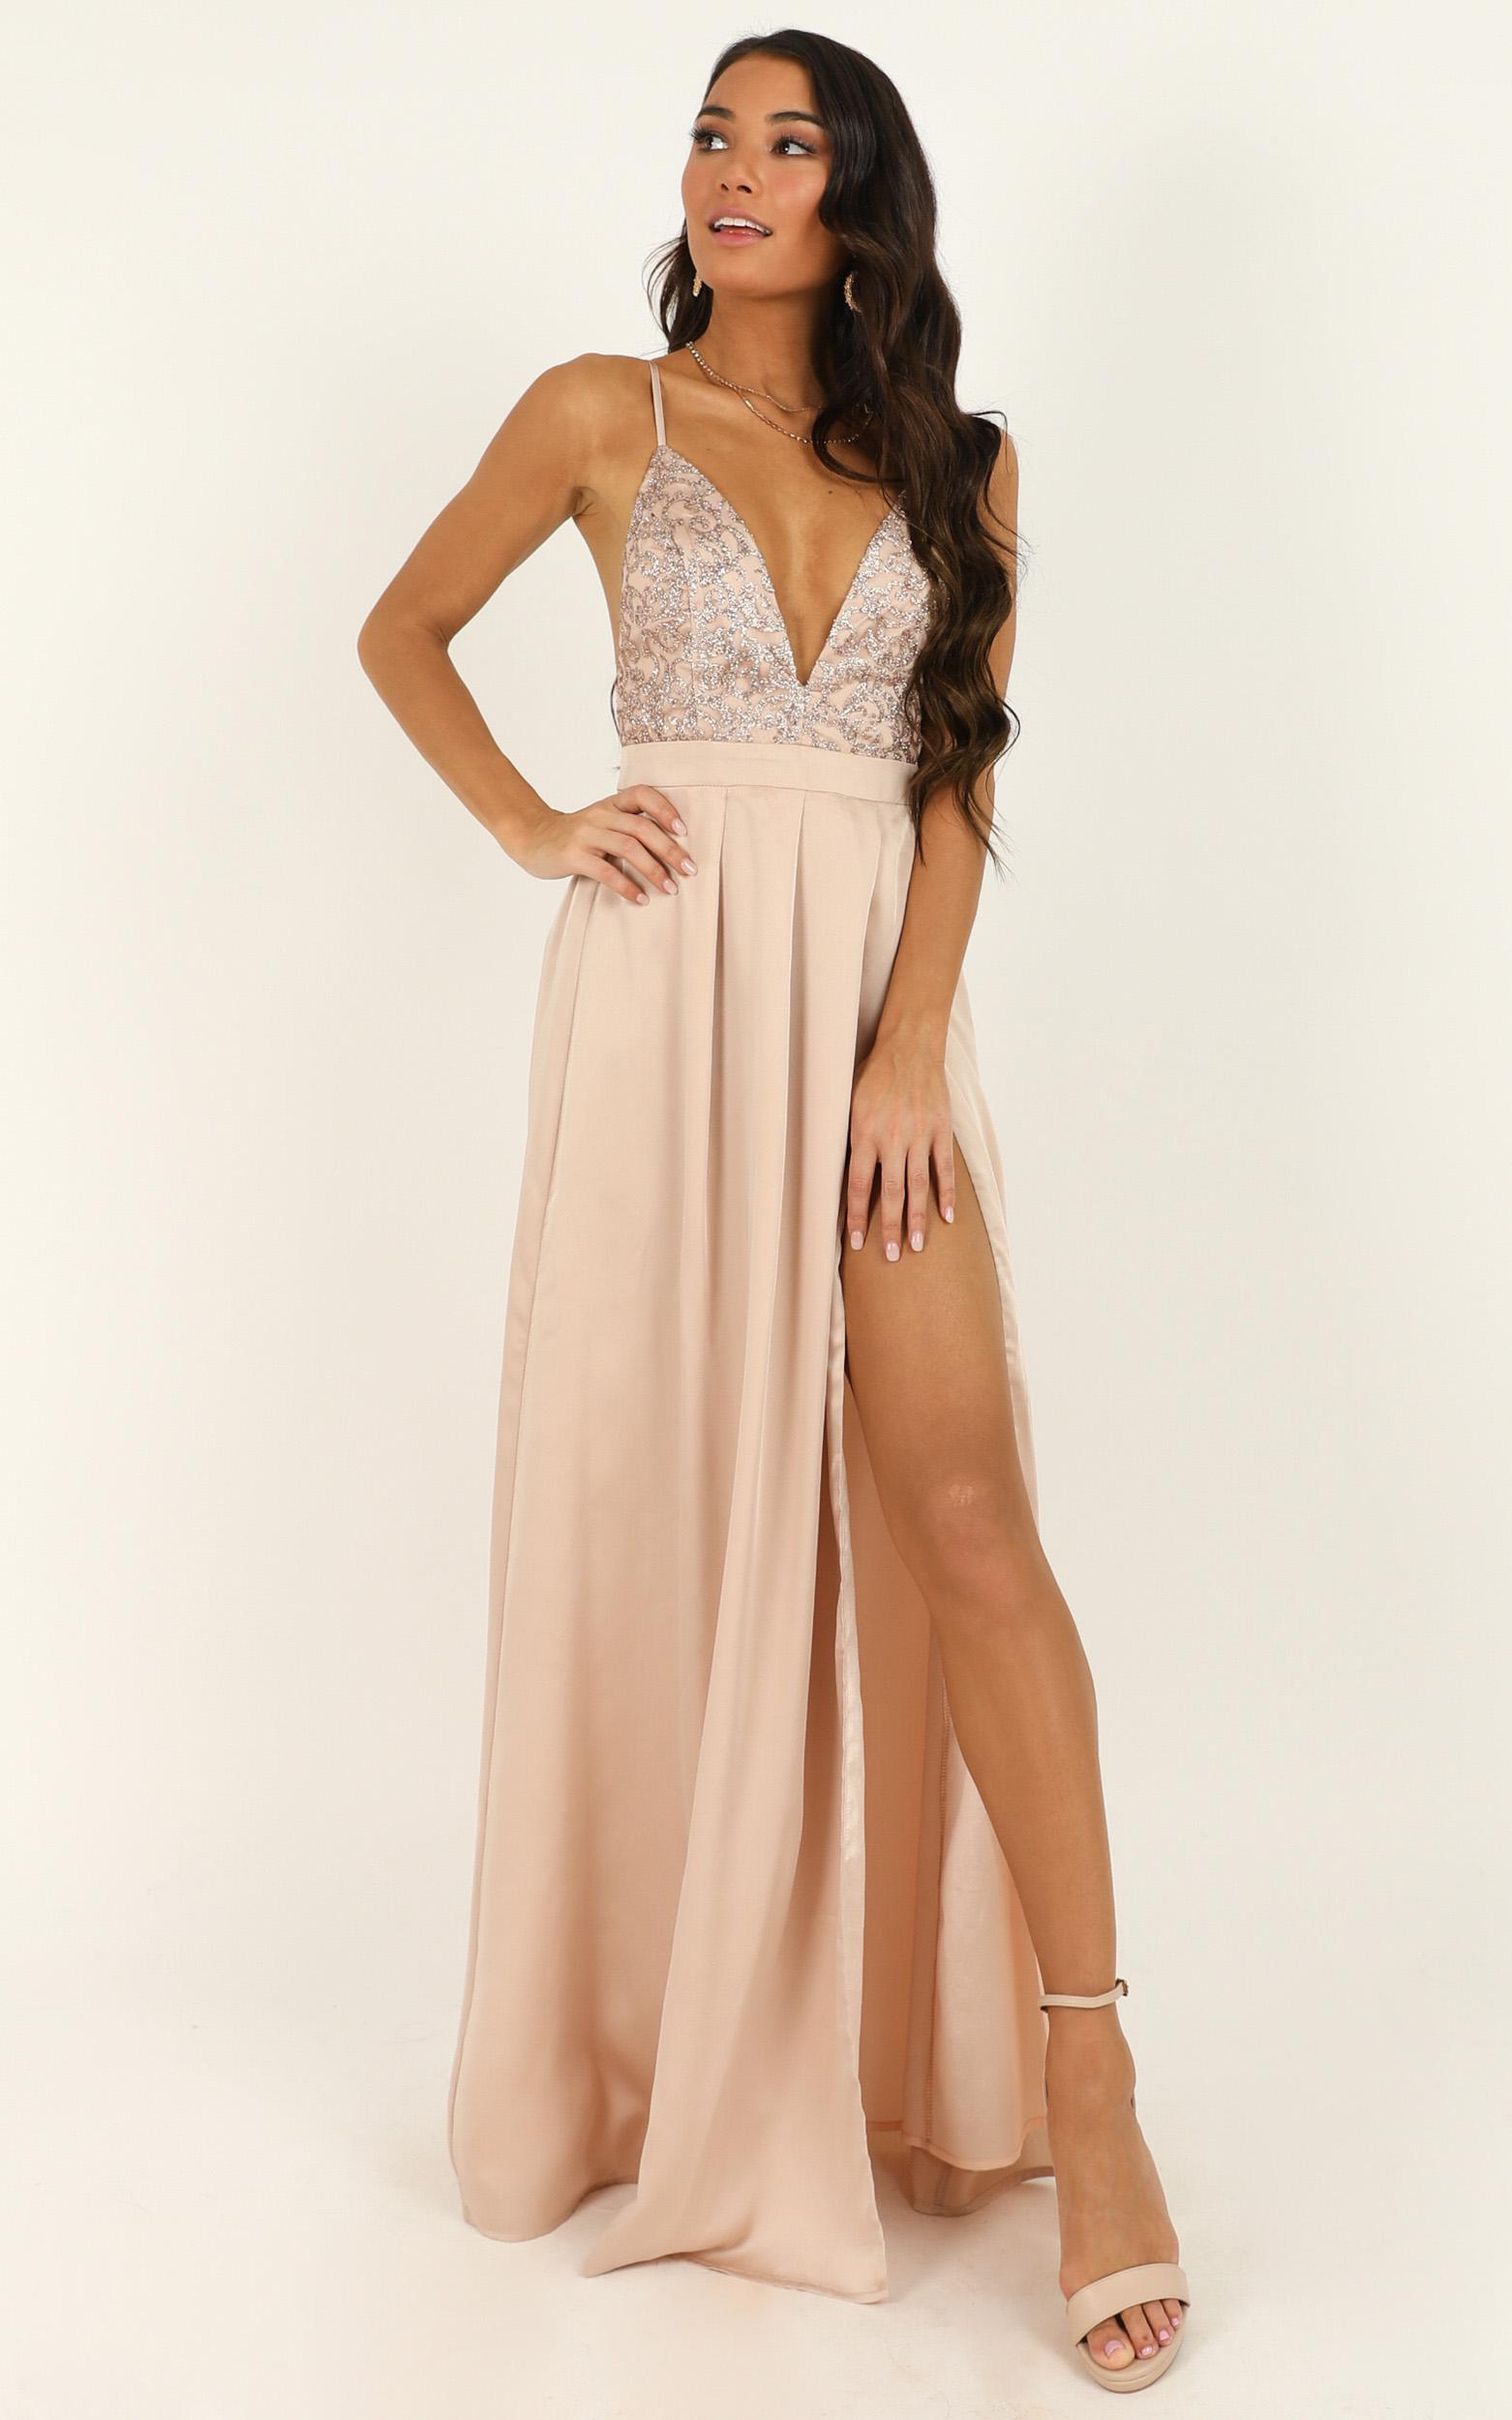 Fairest Of Them All Dress in rose gold glitter - 18 (XXXL), Rose Gold, hi-res image number null